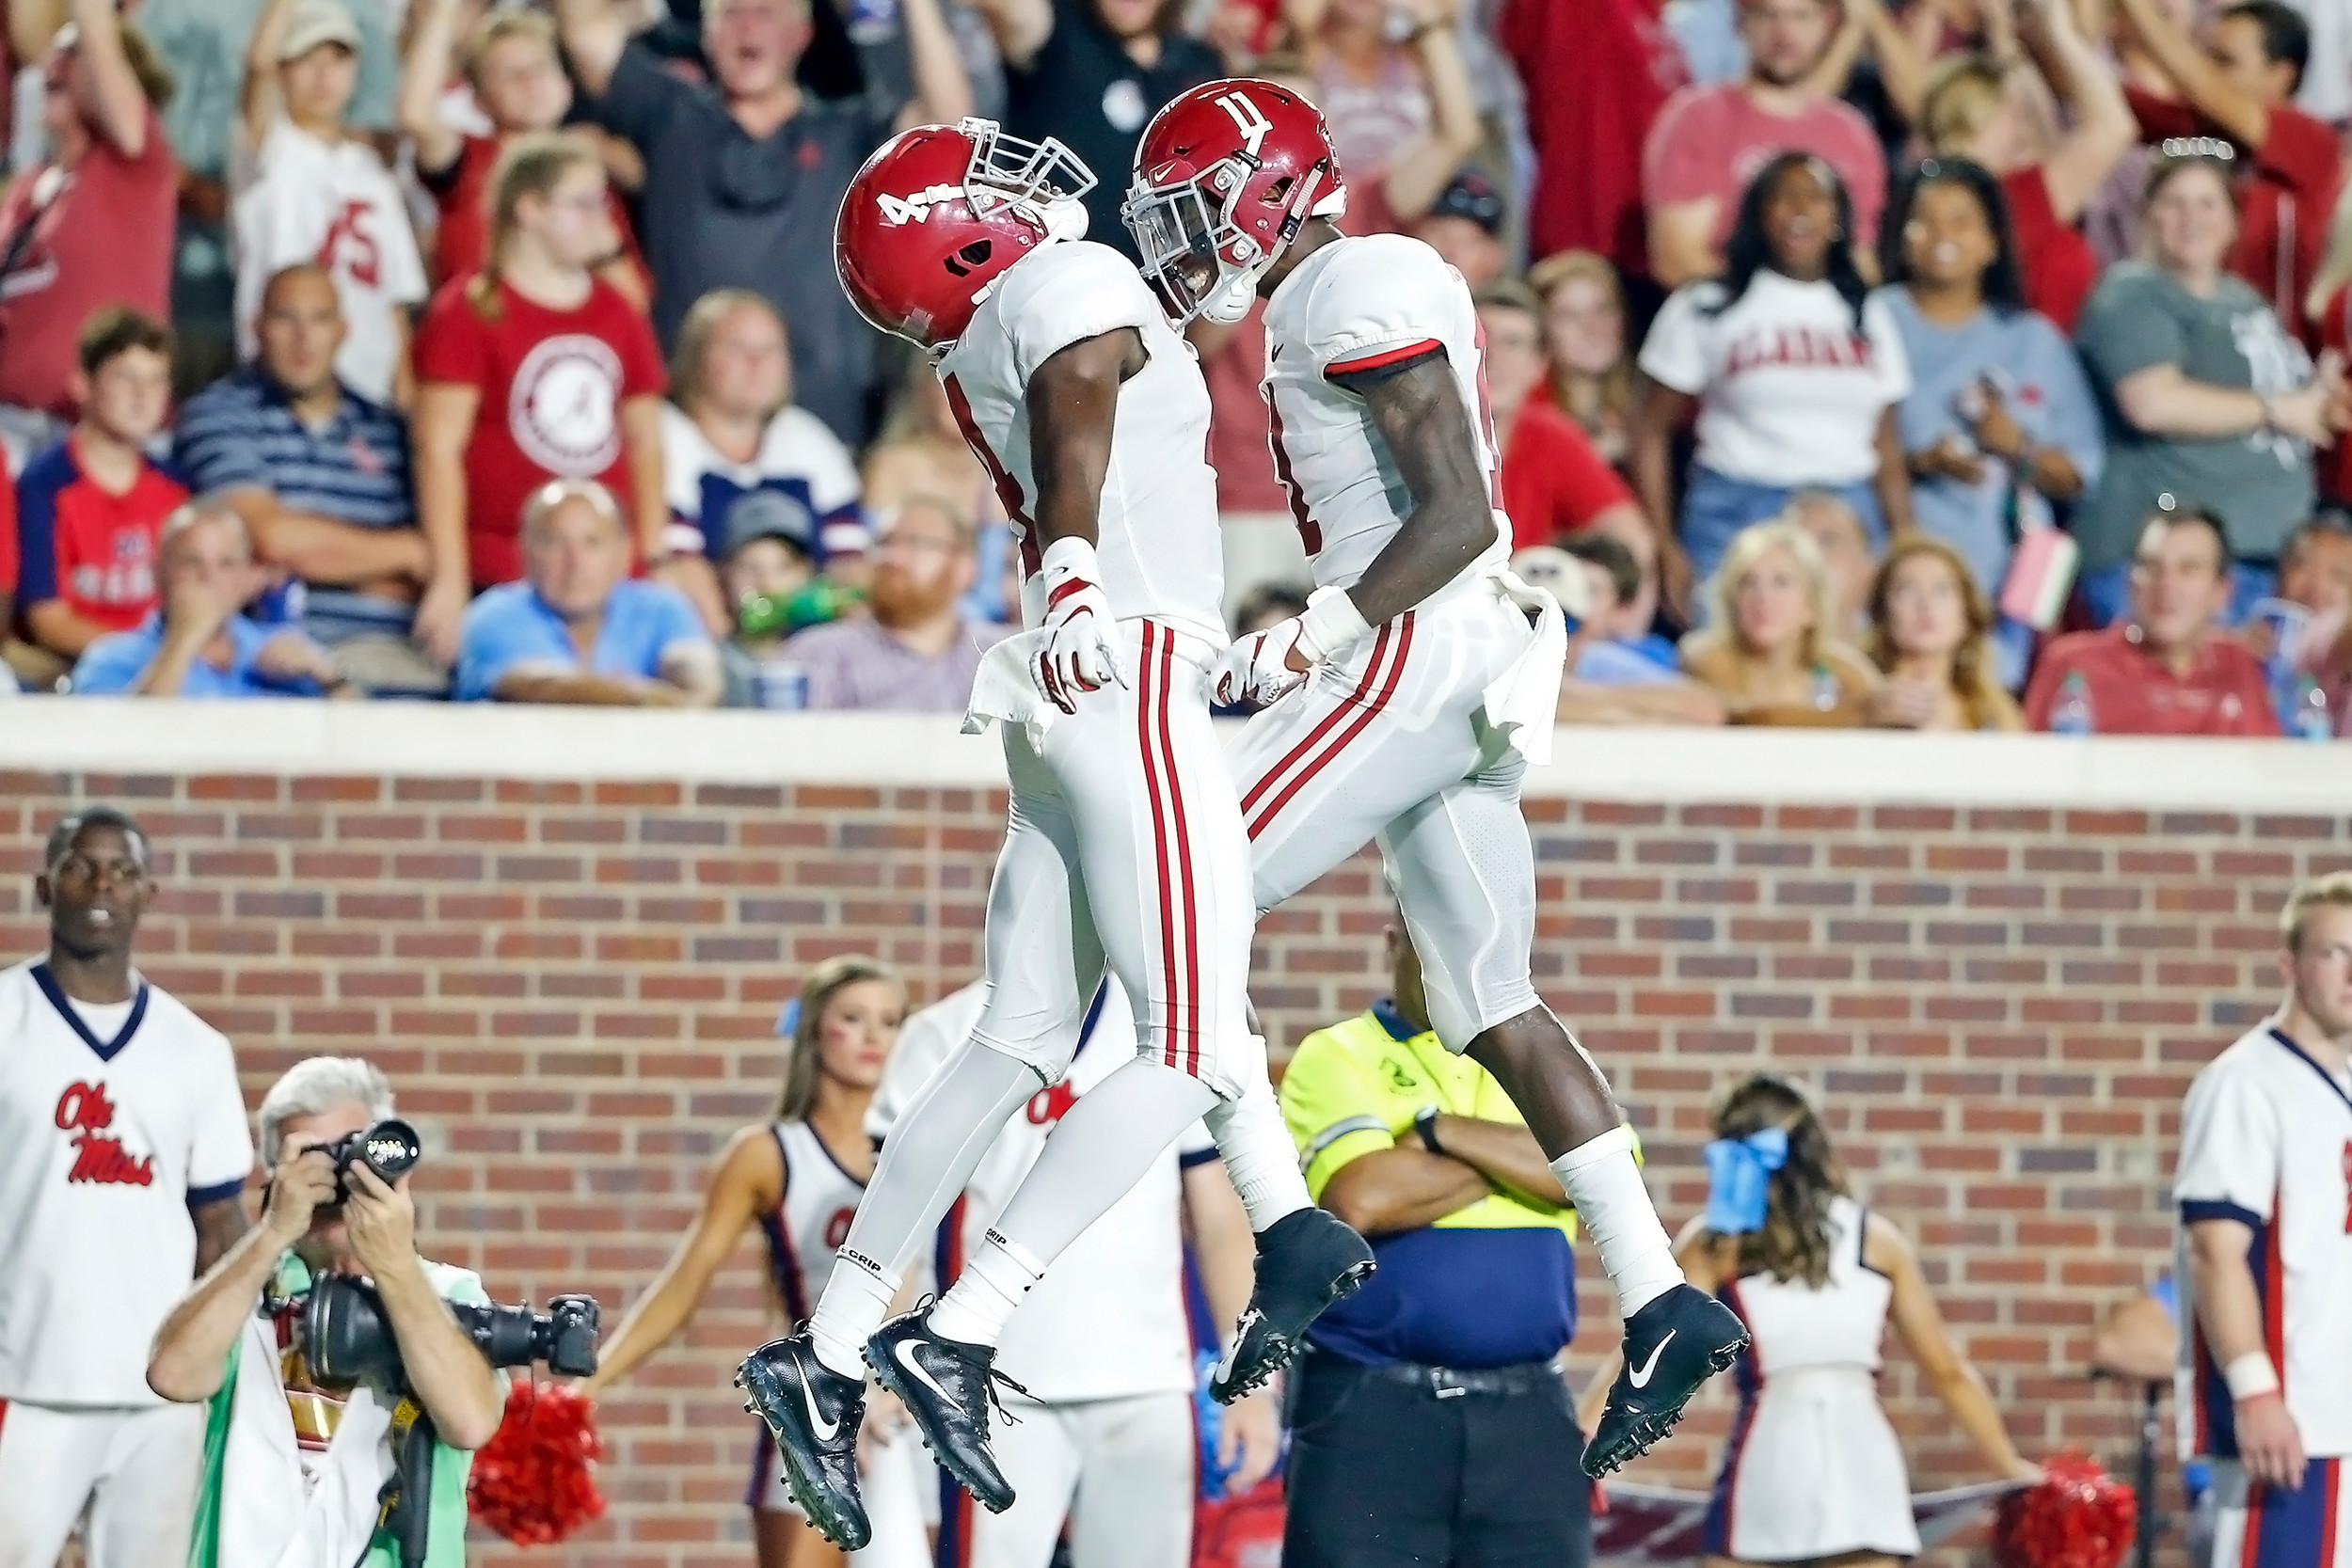 Alabama Crimson Tide wide receivers Jerry Jeudy (4) and Henry Ruggs III (11) celebrate after a touchdown during the game between the University of Alabama and Ole Miss at Vaught-Hemingway Stadium. Jason Clark / Daily Mountain Eagle